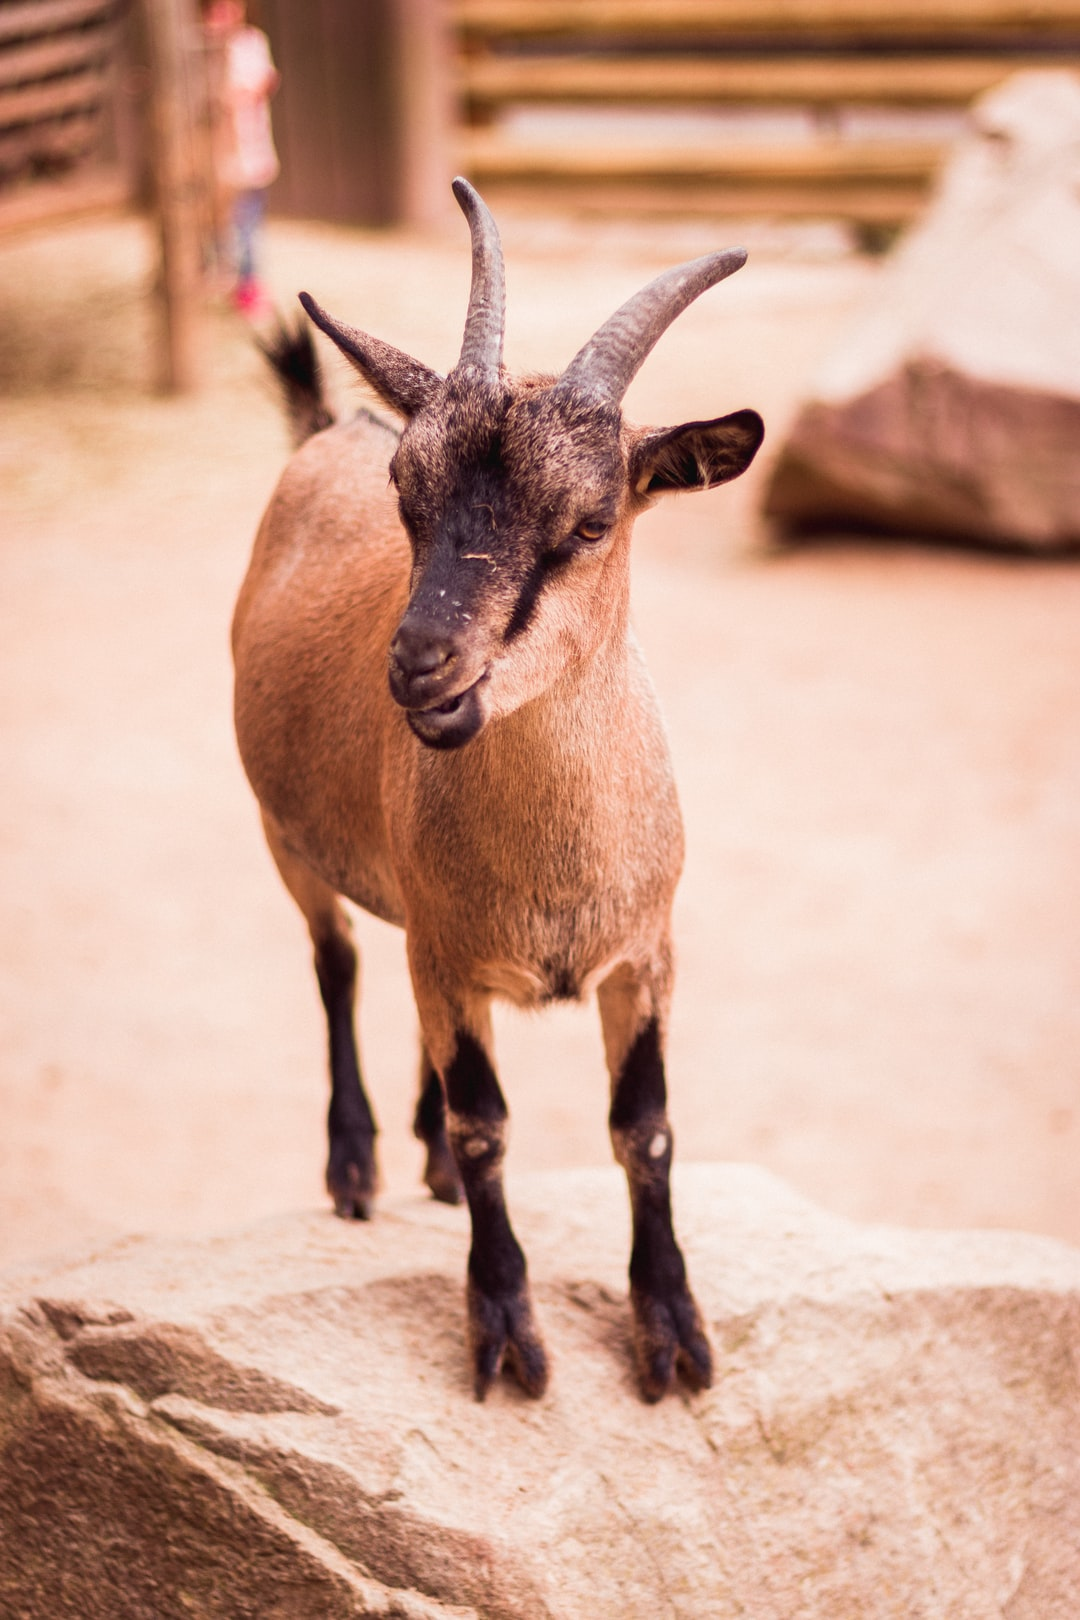 100+ Goat Images | Download Free Pictures on Unsplash